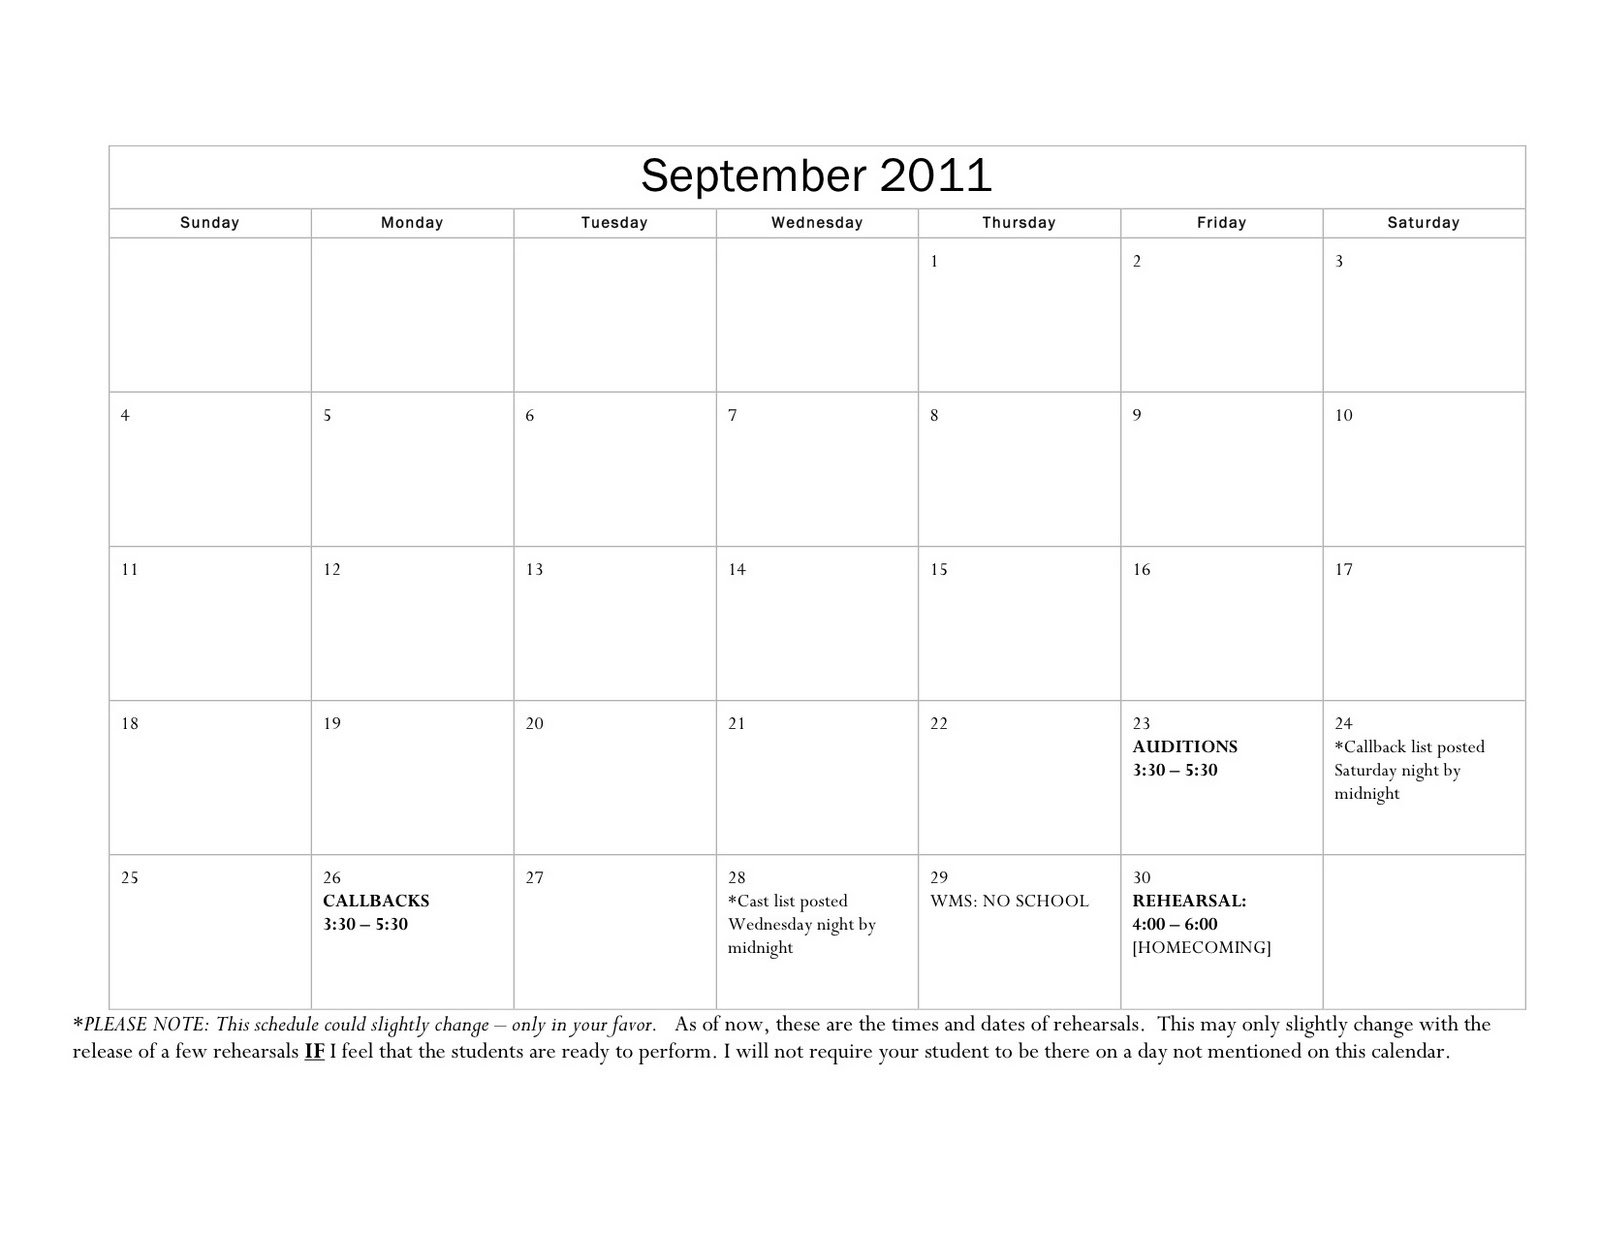 Wyoming Middle School Theater: Rehearsal Calendar: Fall 2011 Two Weeks In May Calendar